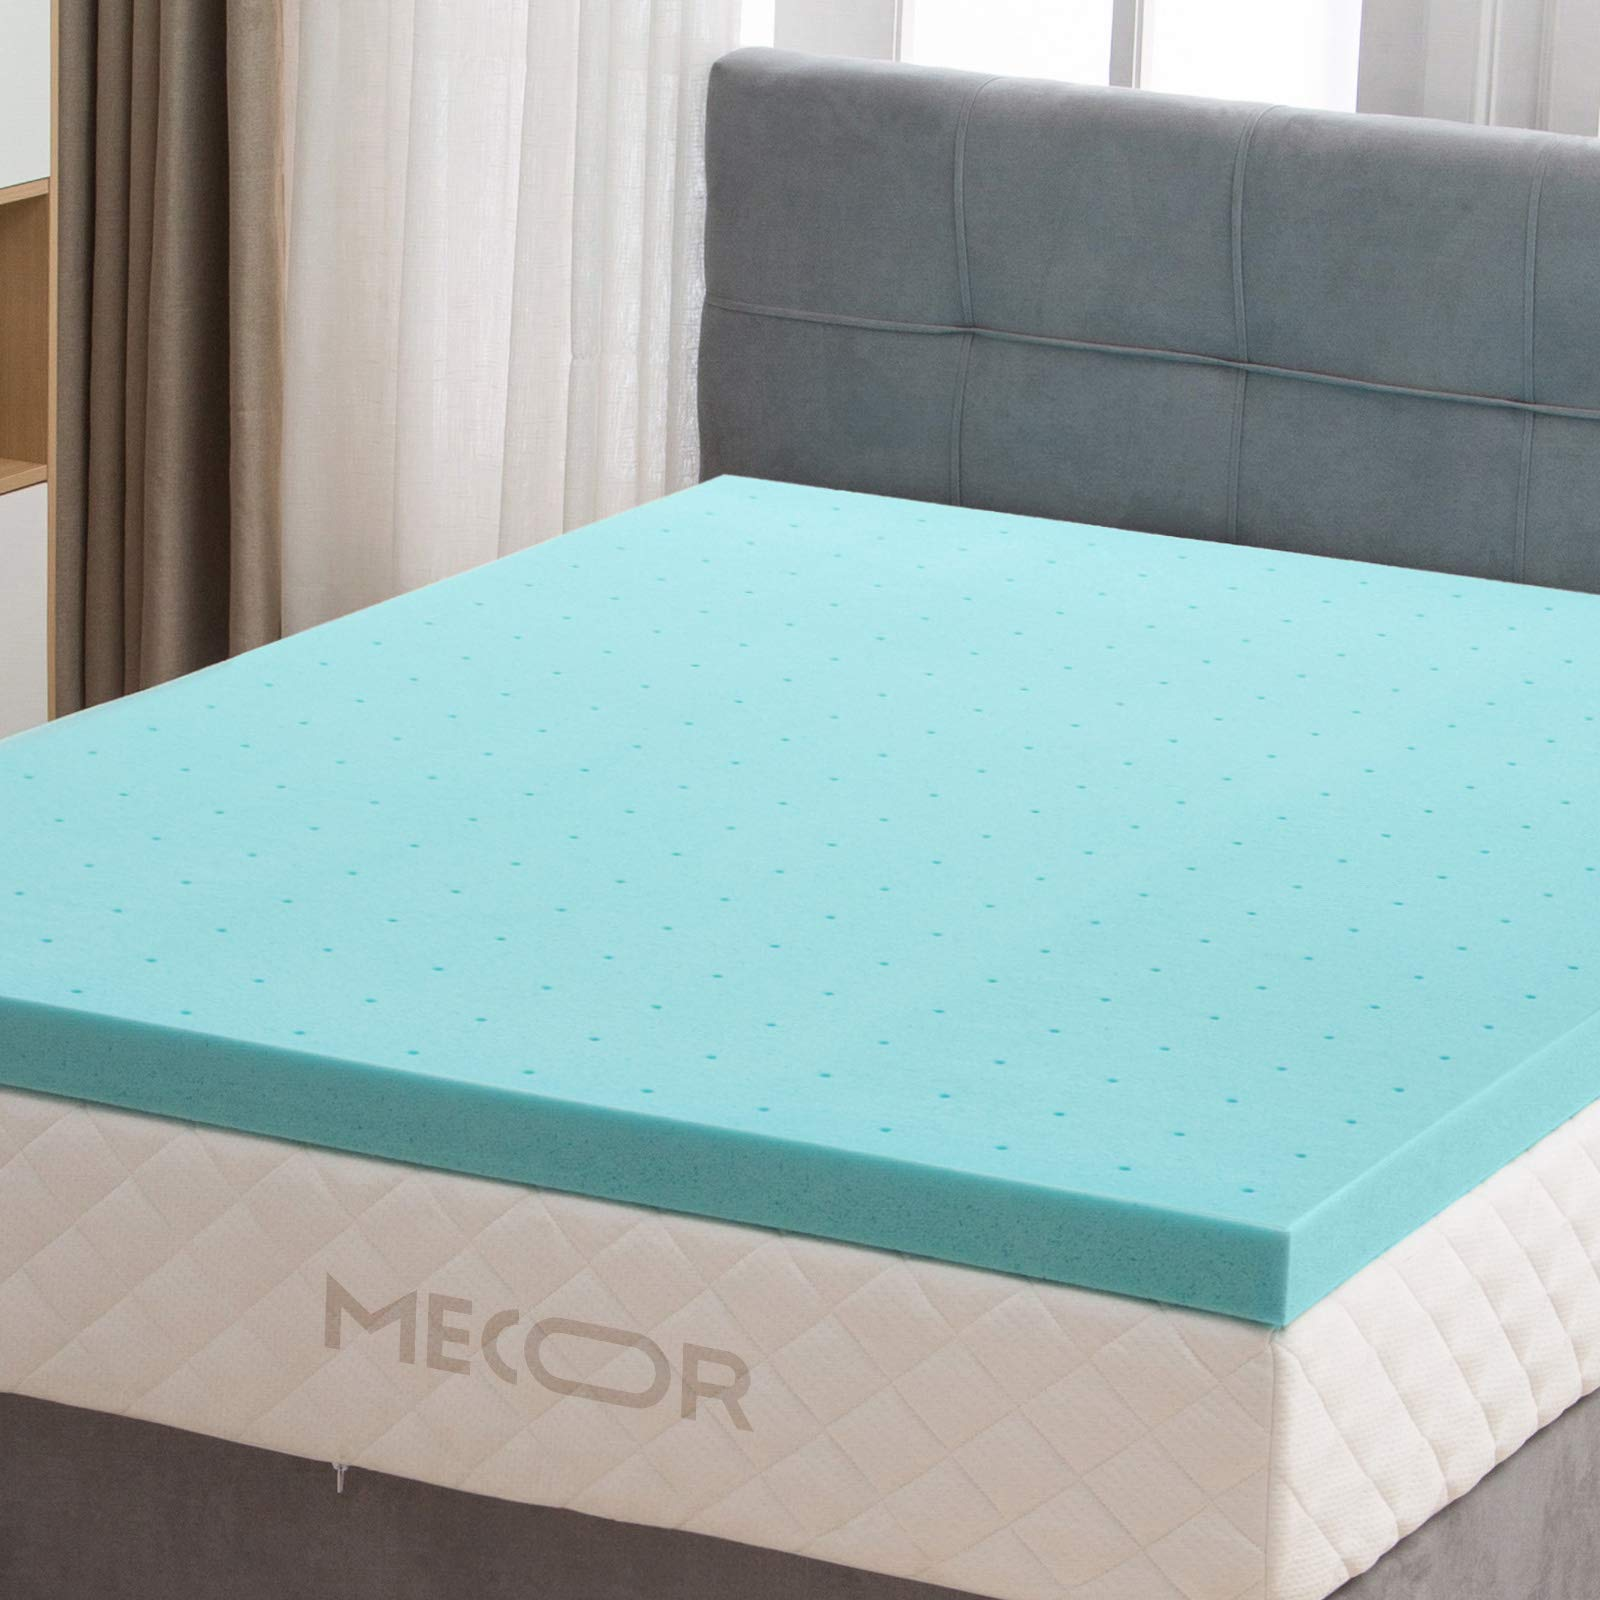 mecor 4 Inch 4'' 100% Gel Infused Memory Foam Mattress Topper -King Size Ventilated Design Bed Topper- Promotes Airflow - Relieves Pressure Points -CertiPUR-US Certified/Blue by mecor